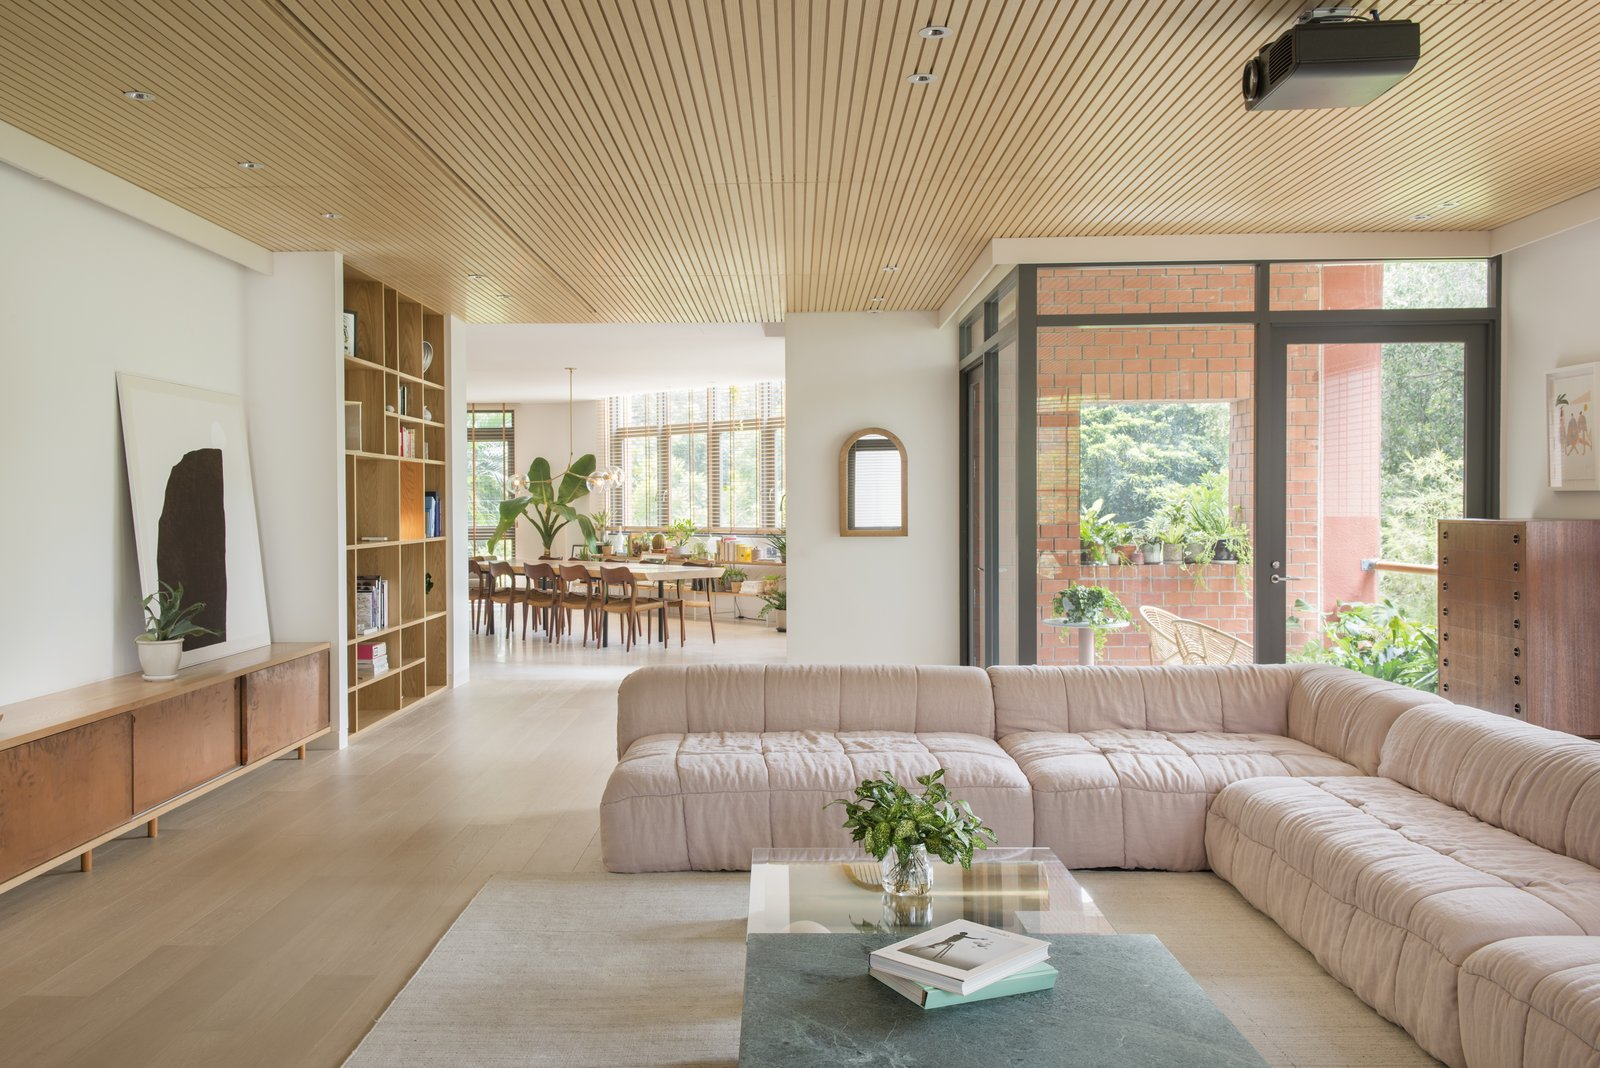 Living Room, Coffee Tables, Sectional, Recessed Lighting, Light Hardwood Floor, Rug Floor, and Storage  Photo 2 of 10 in The Light and Airy Apartment G in Downtown Singapore